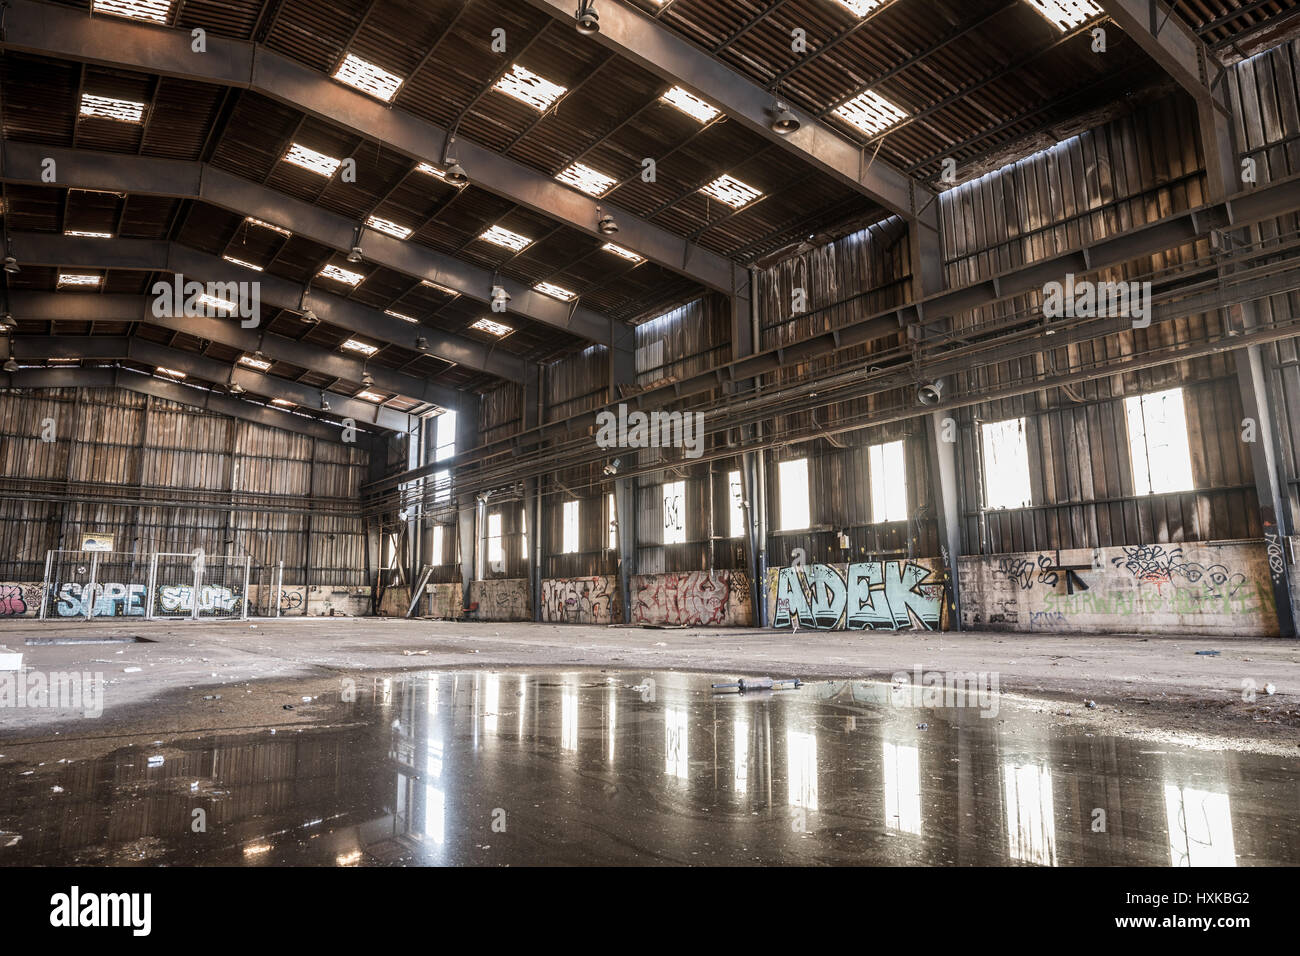 Large abandoned hangar in Nantes  France Stock Photo  136879794   Alamy Large abandoned hangar in Nantes  France